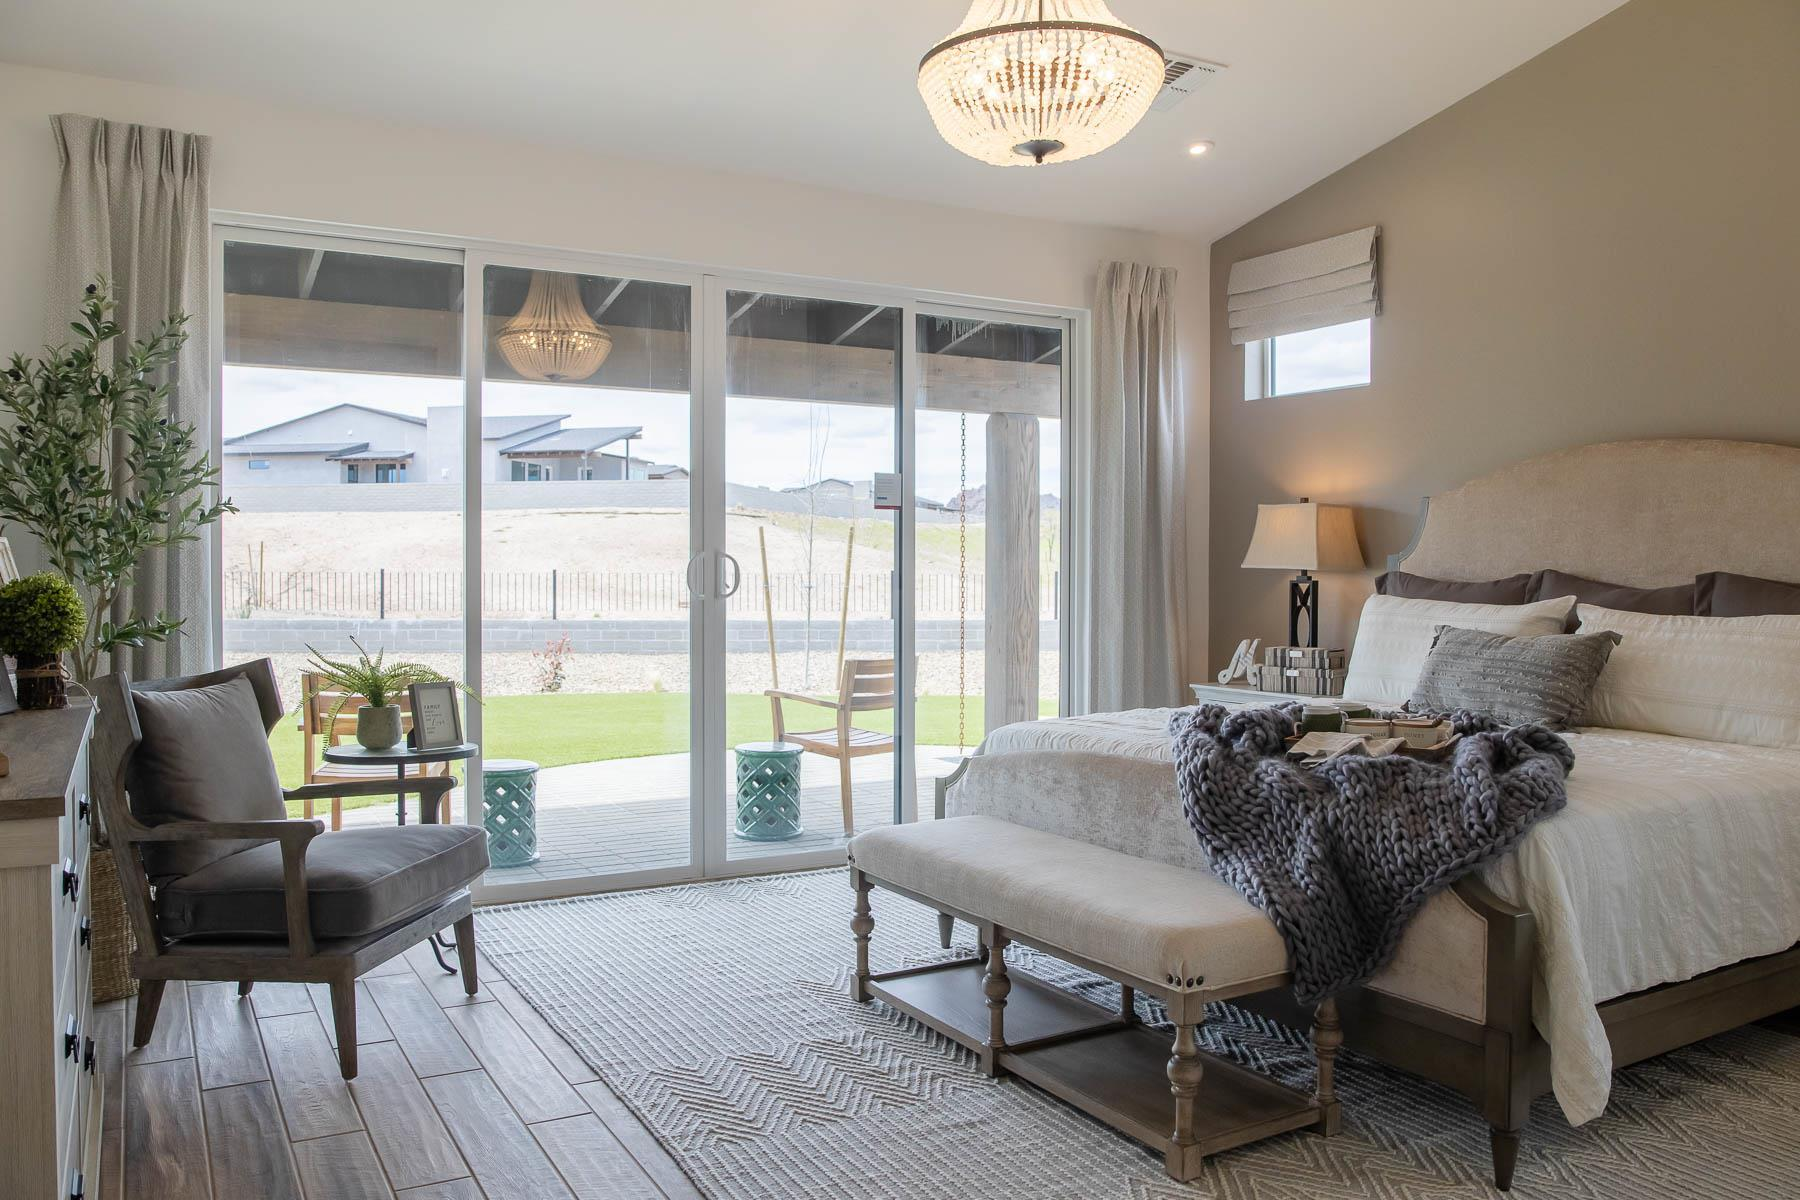 Bedroom featured in the J704 By Mandalay Homes in Prescott, AZ